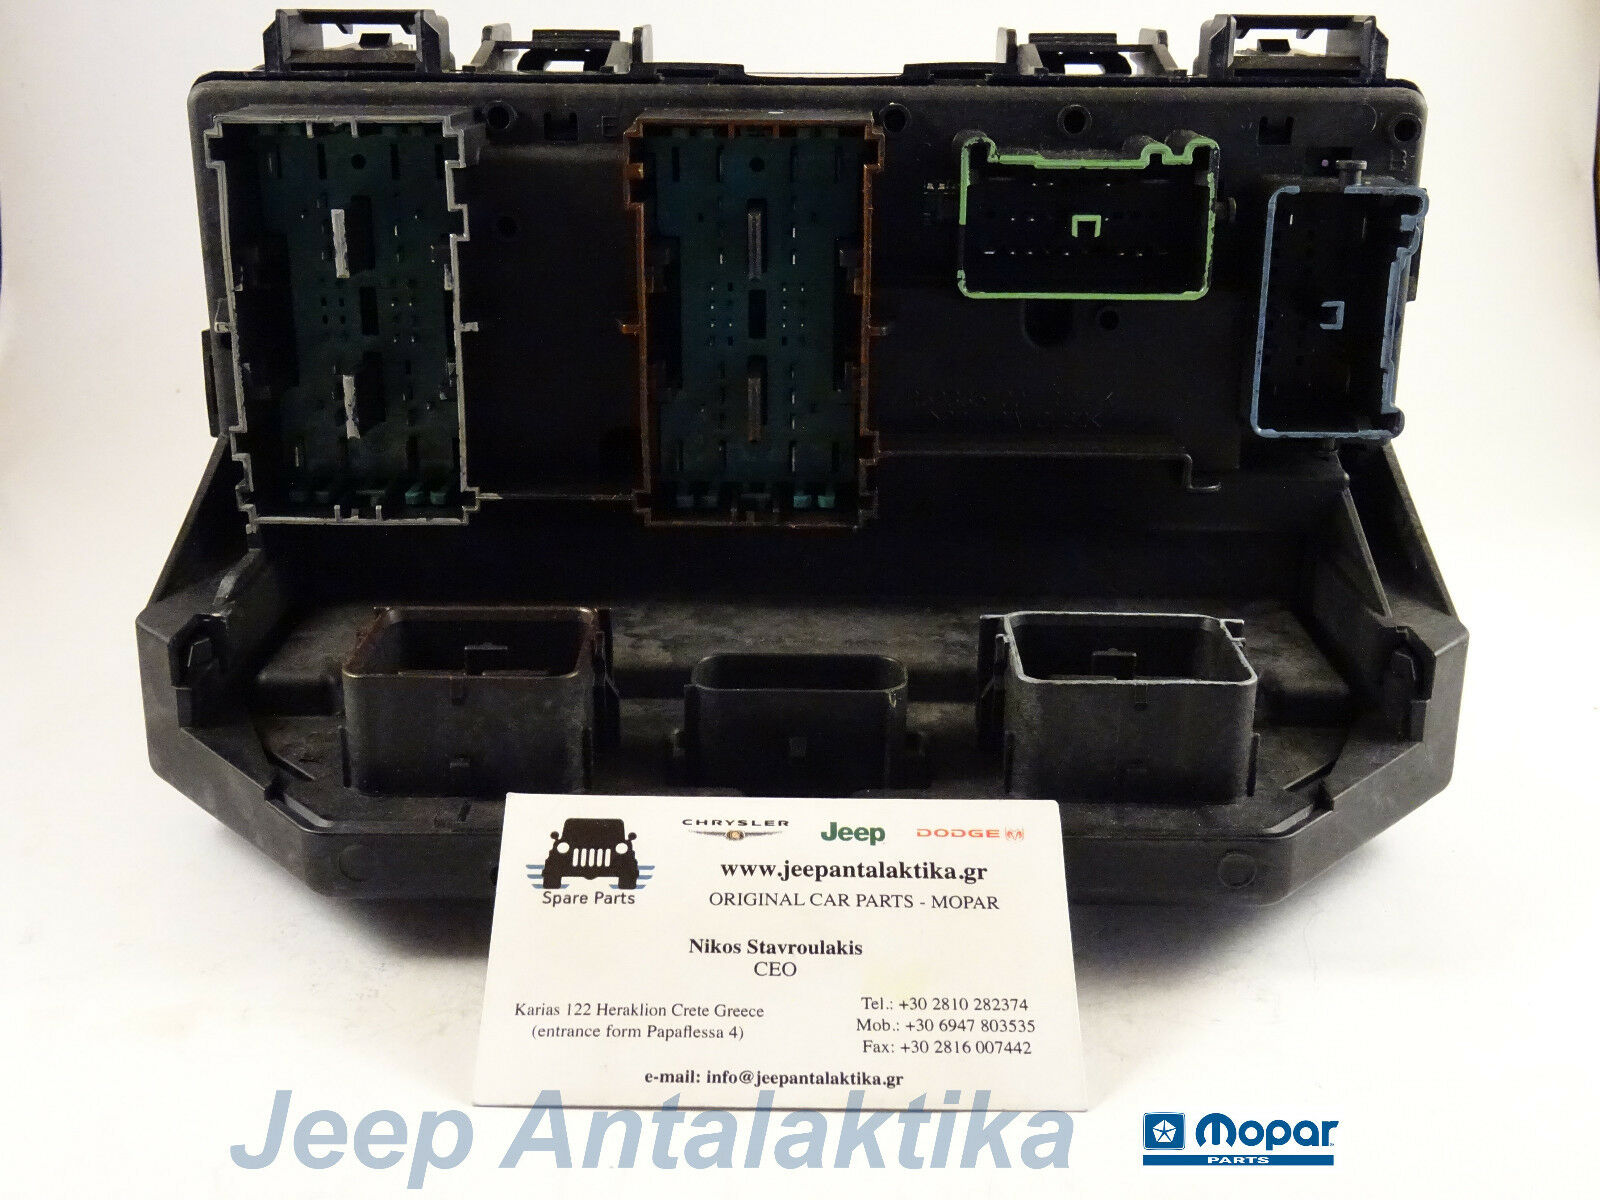 Details about Fuse Relay-Distribution Box Jeep Liberty KK 2008 4692235AJ on jeep liberty fuse schematic, subaru tribeca fuse box, jeep liberty horn fuse, chevy blazer fuse box, jeep liberty 2005 fuse list, bmw 328i fuse box, acura cl fuse box, jeep comanche fuse box, chevy tracker fuse box, jeep patriot fuse box location, jeep xj fuse box, ram 1500 fuse box, jeep wrangler fuse box, 2002 jeep cherokee fuse box, jeep patriot fuse diagram, lotus elise fuse box, jeep liberty air box, 2001 jeep cherokee fuse box, jeep yj fuse box, ford bronco fuse box,